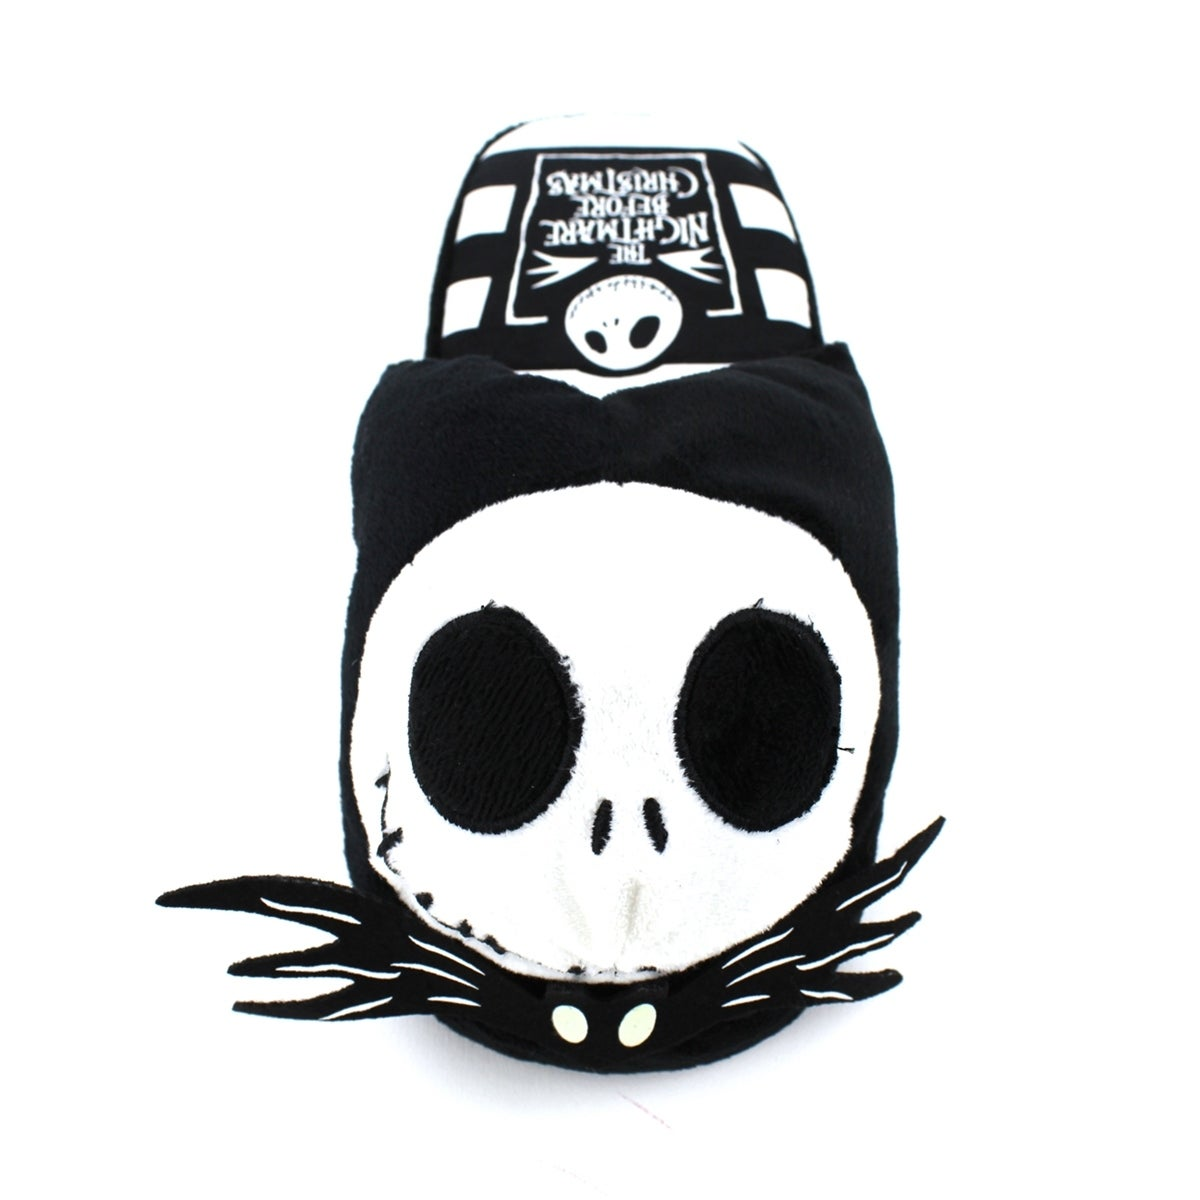 Shop Great for Halloween Slippers, shoes, NBC Jack Skellington ...